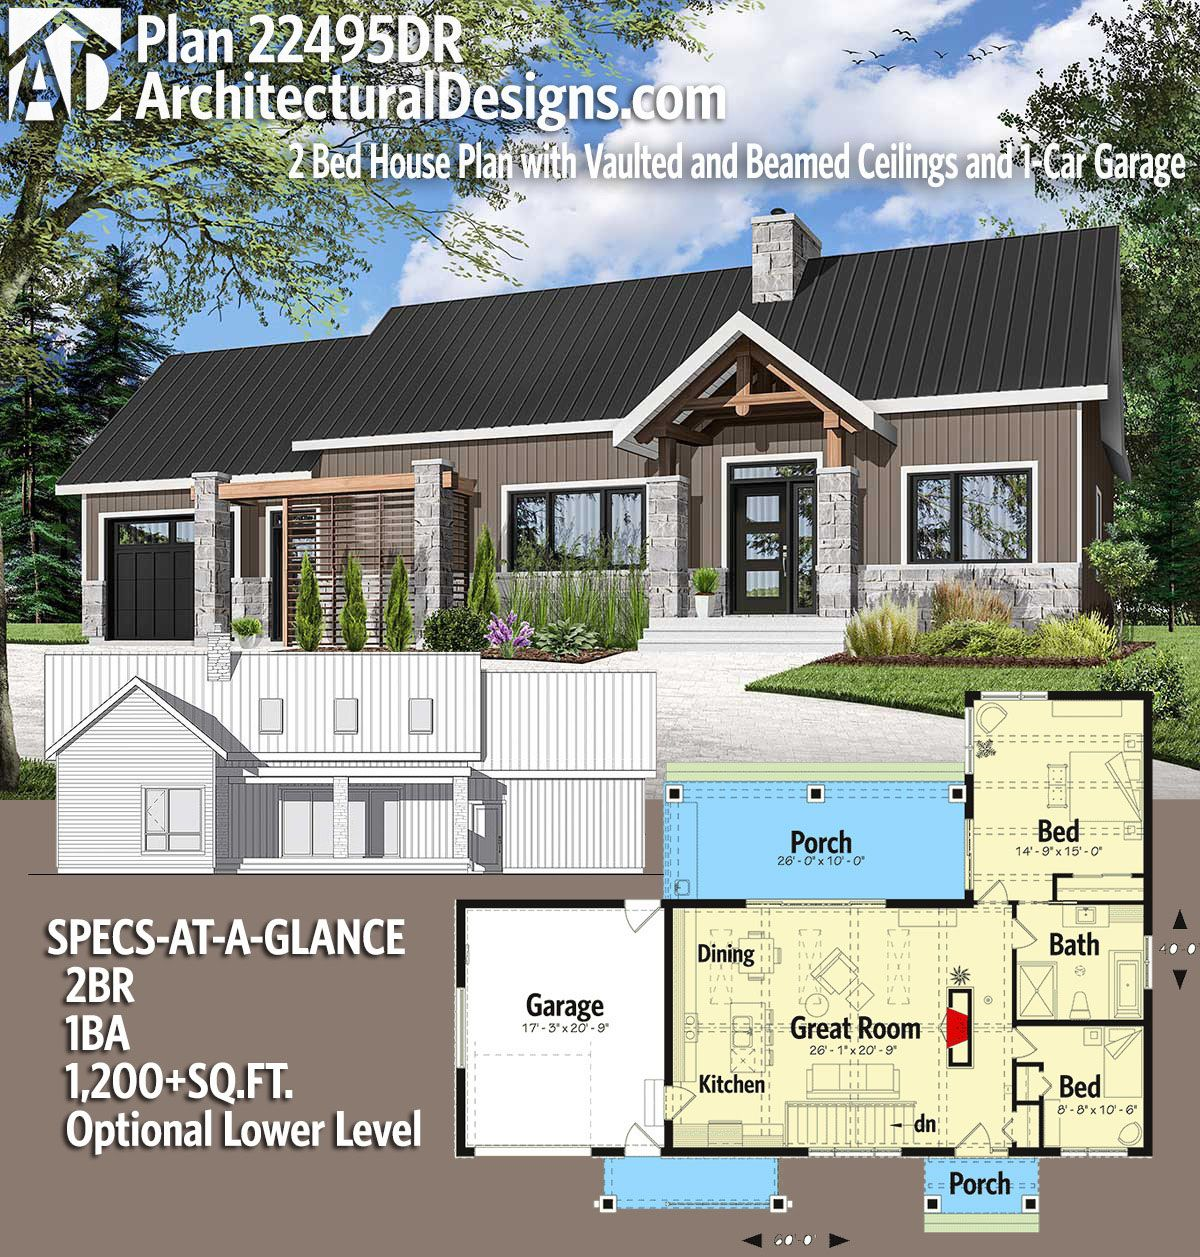 Plan 22495dr 2 Bed House Plan With Vaulted And Beamed Ceilings And 1 Car Garage House Plans House House Blueprints